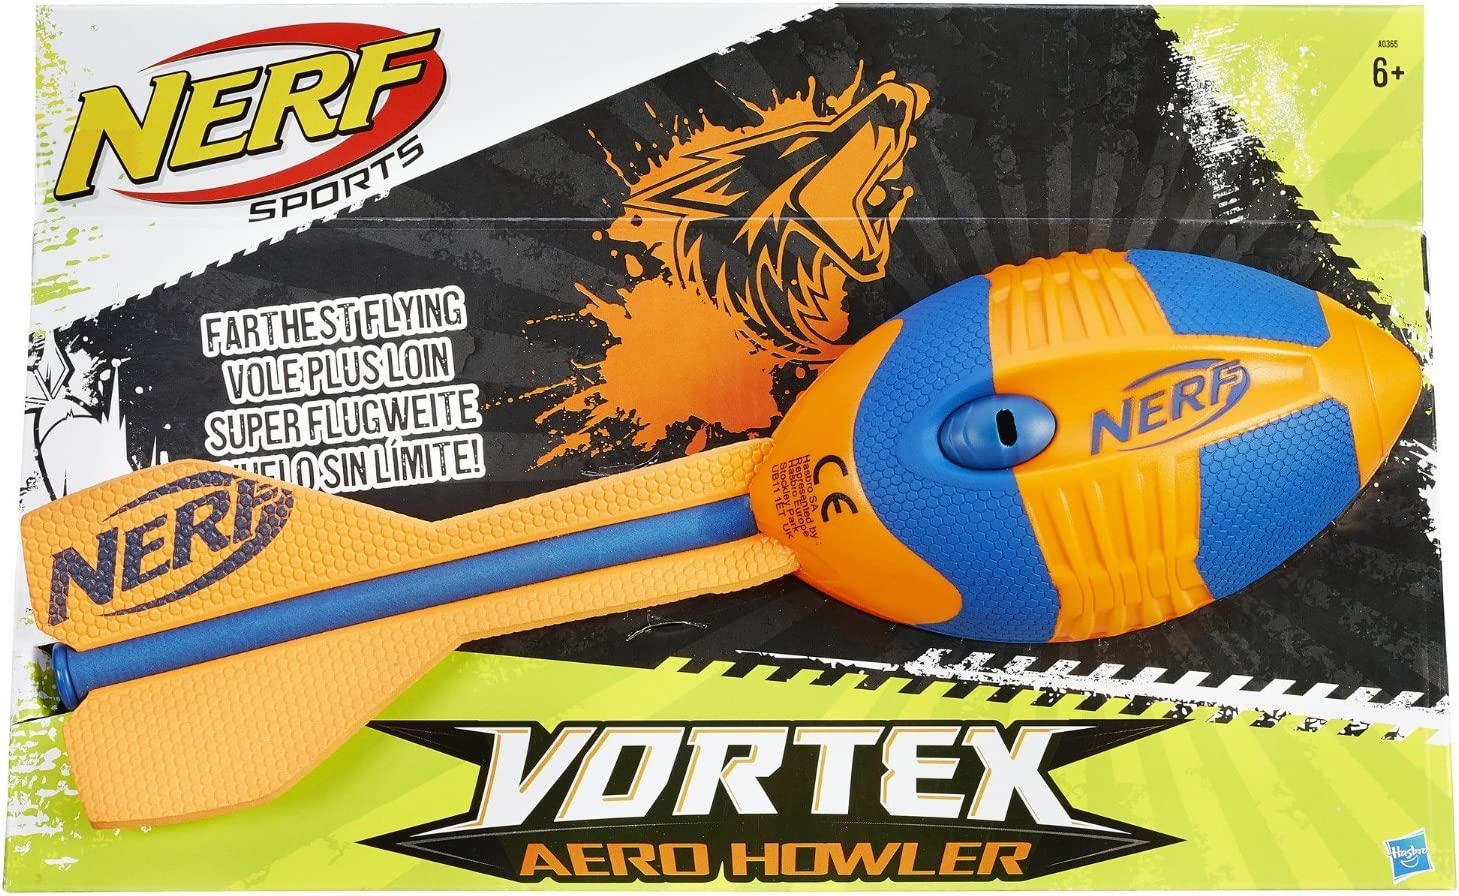 Nerf Vortex Whistler Football Assorted Colours Fun Outdoor Throwing Toy Game New